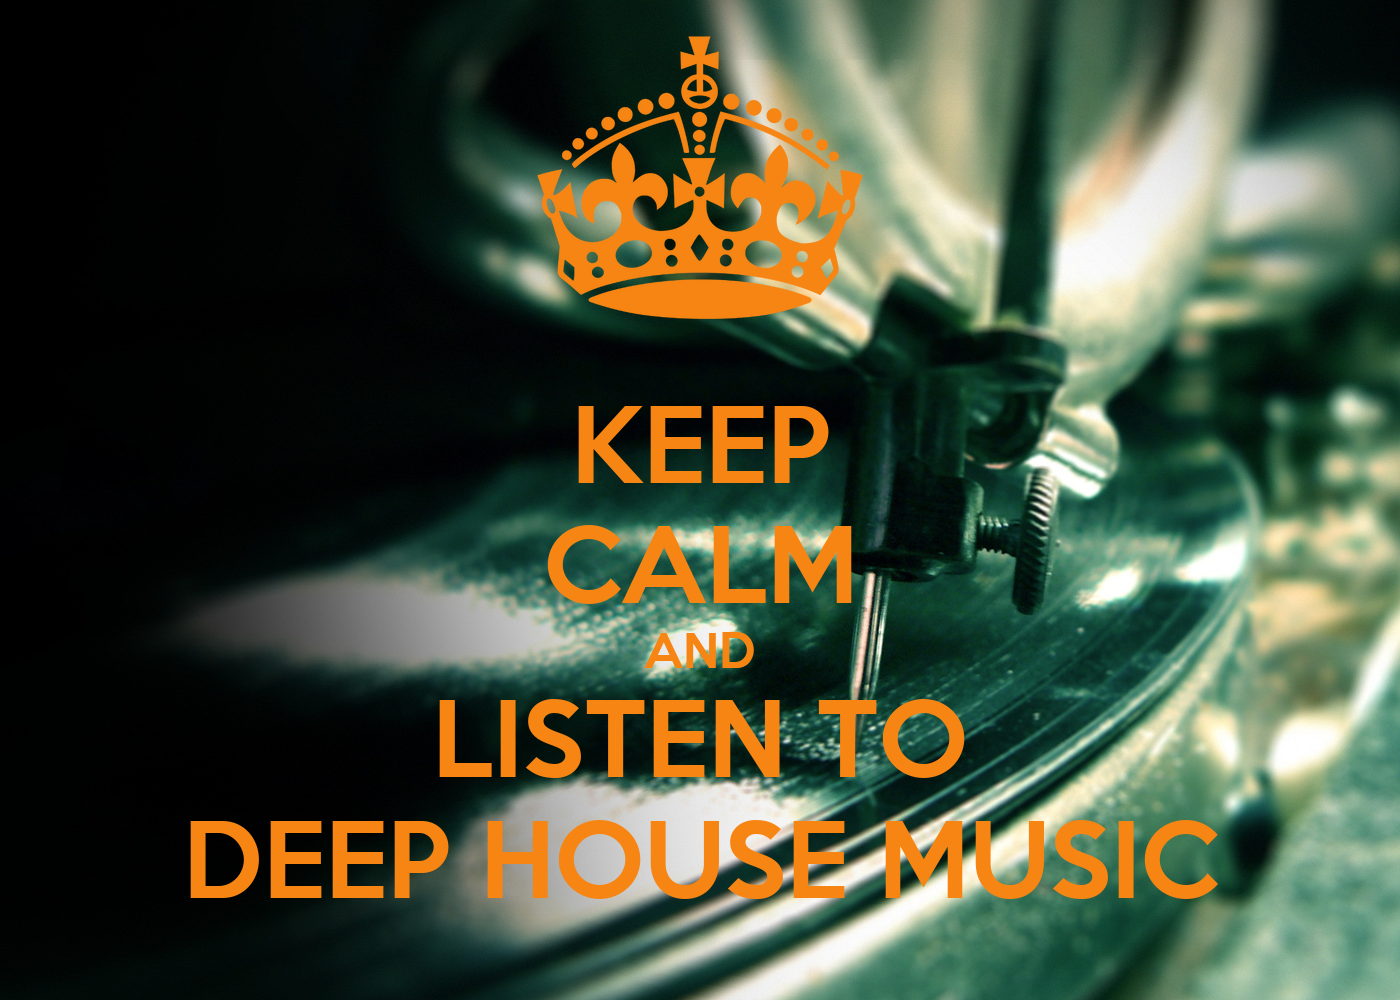 Keep calm and listen to deep house music poster cristian for Top 10 deep house music